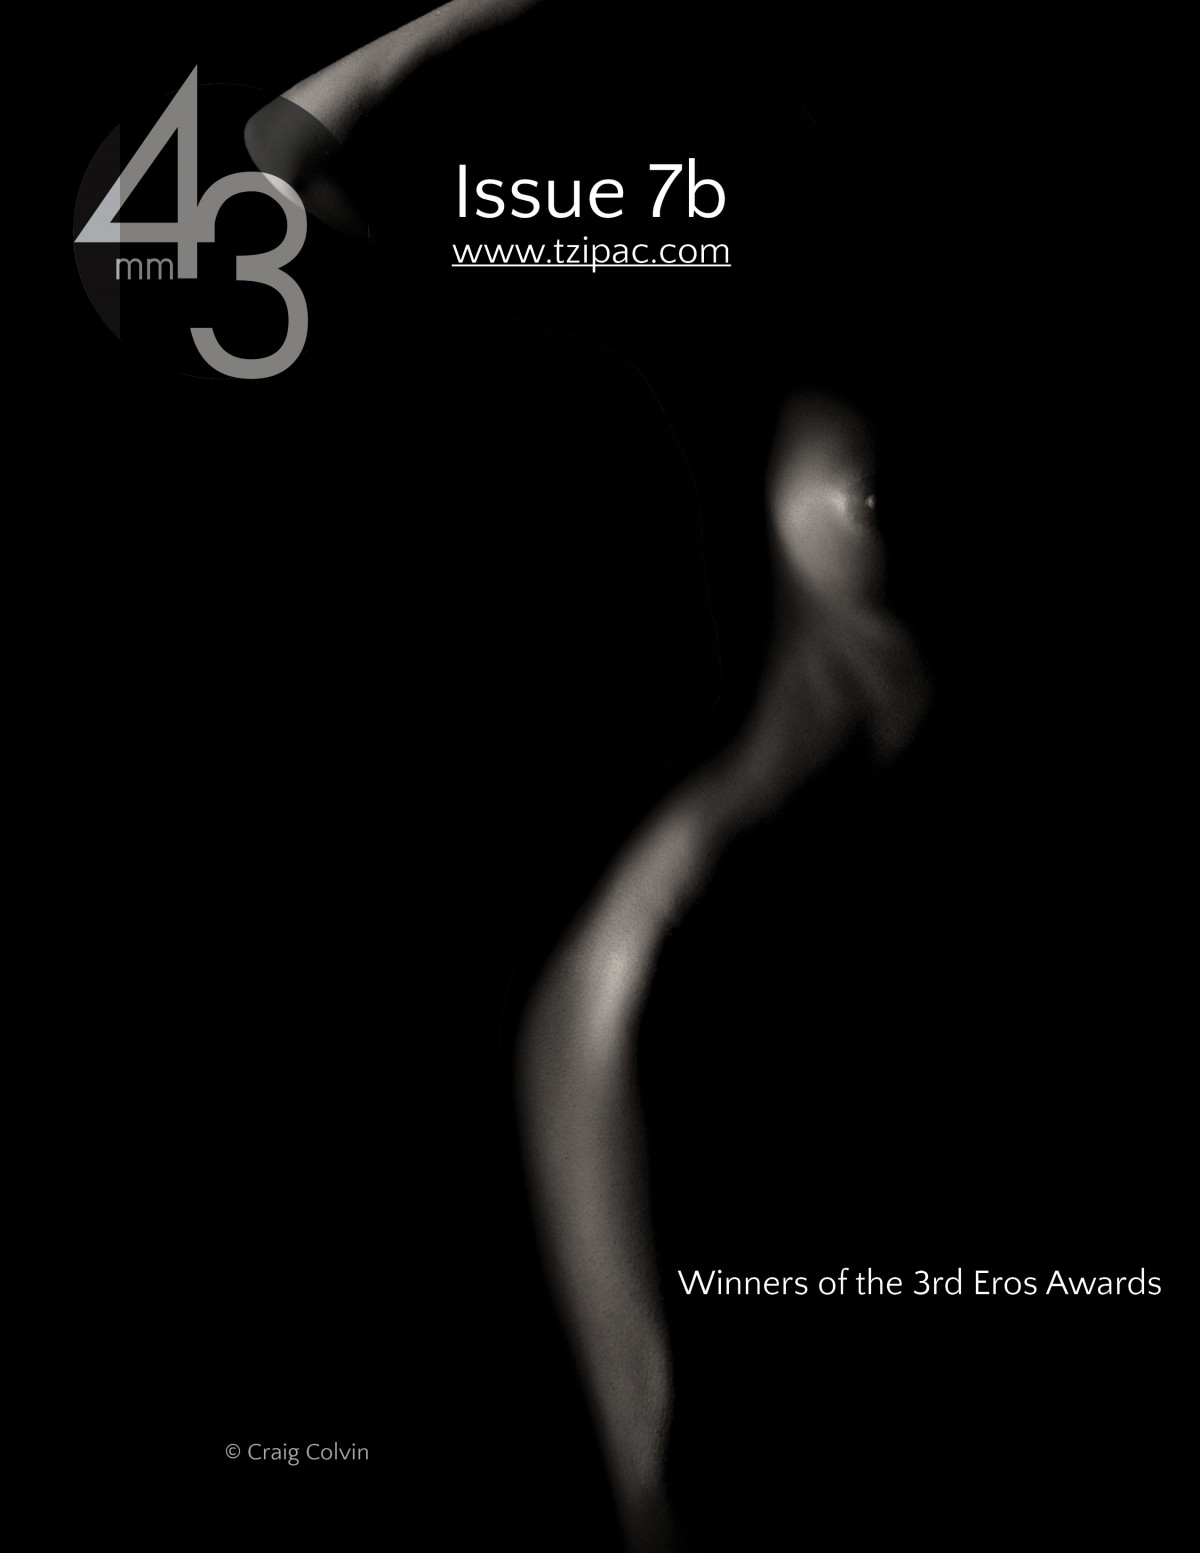 43mm Magazine Issue 7b - 3rd Eros Awards